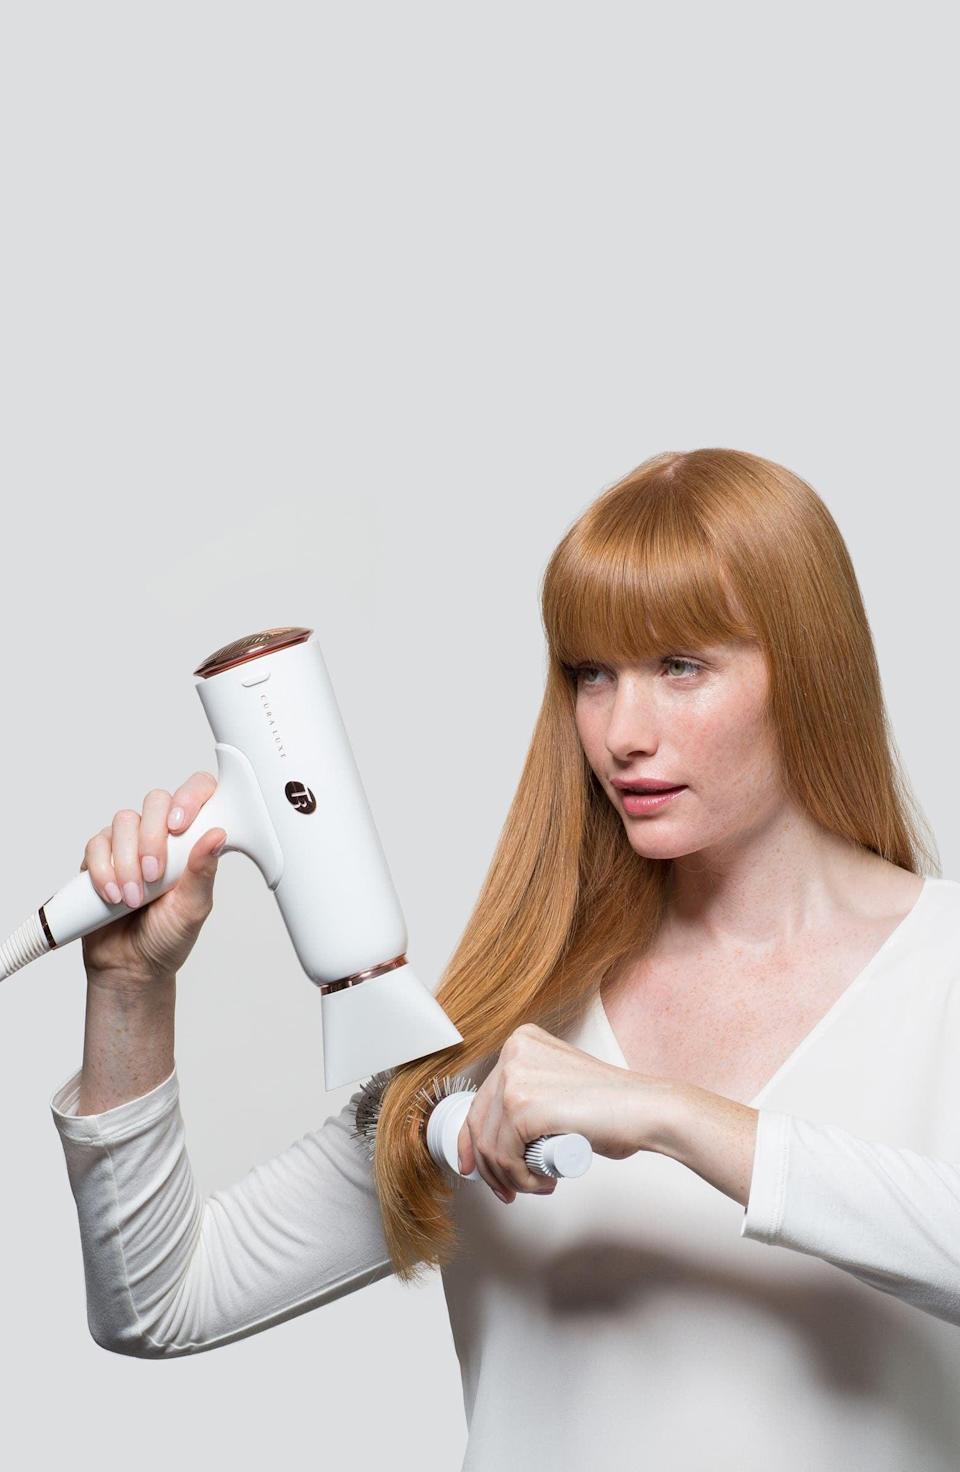 <p><span>T3 Cura Luxe Professional Ionic Hair Dryer With Auto Pause Sensor</span> ($230, originally $285)</p>